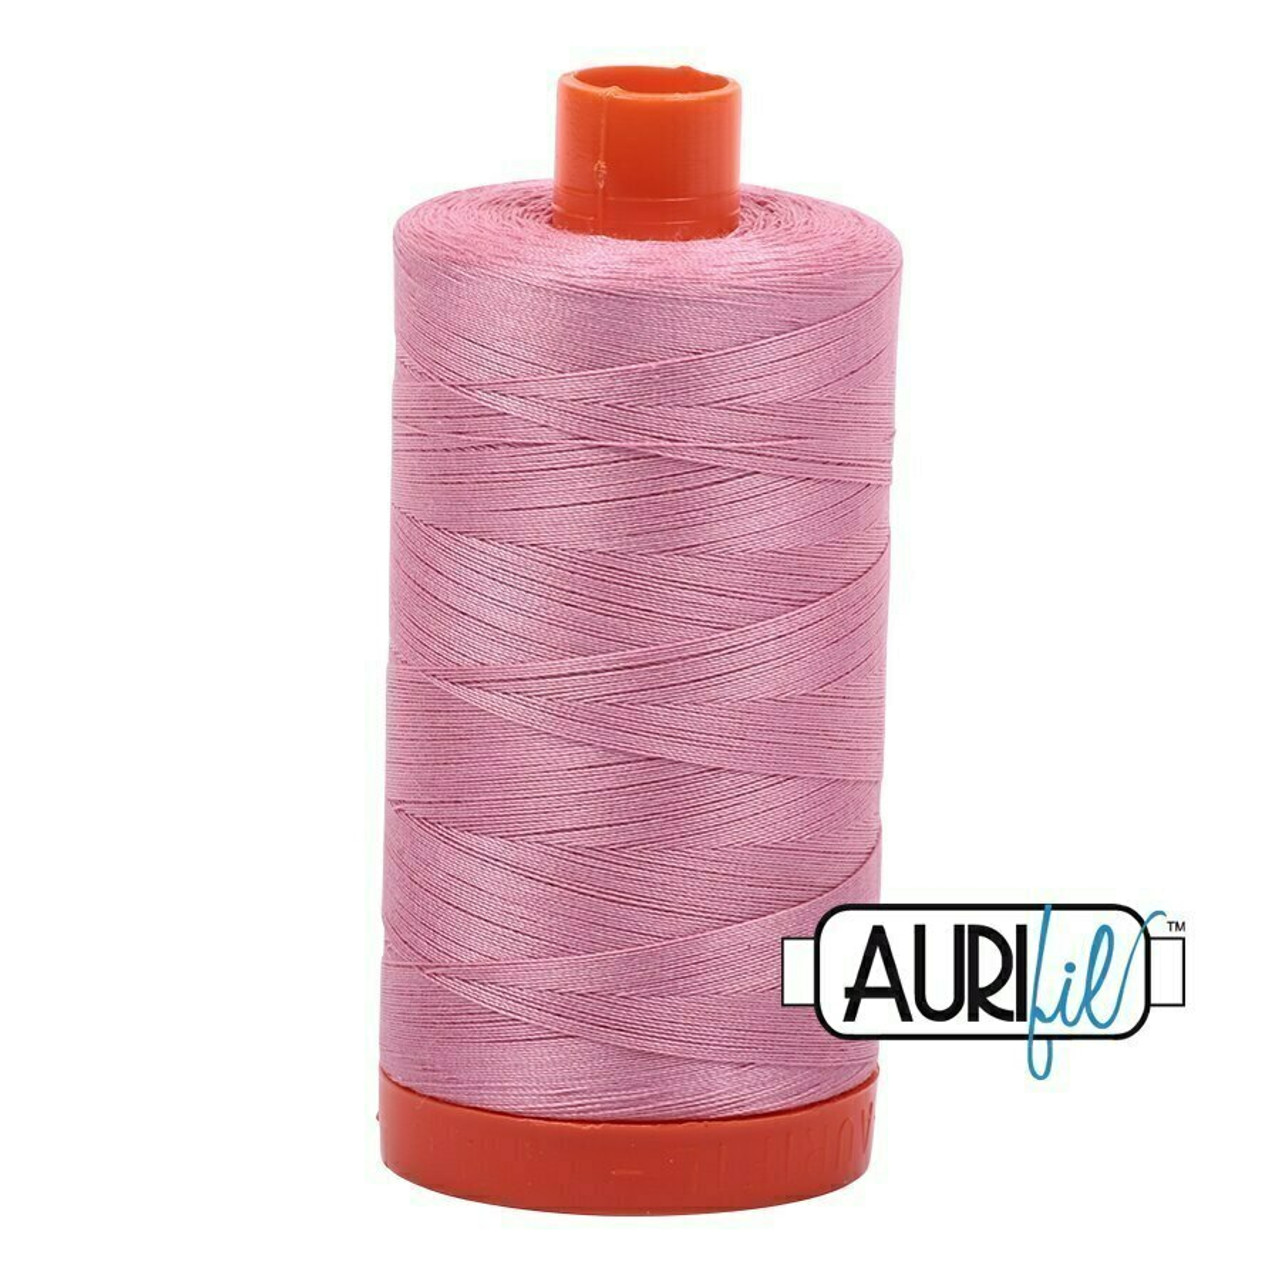 Aurifil 50wt Antique Rose (2430) thread